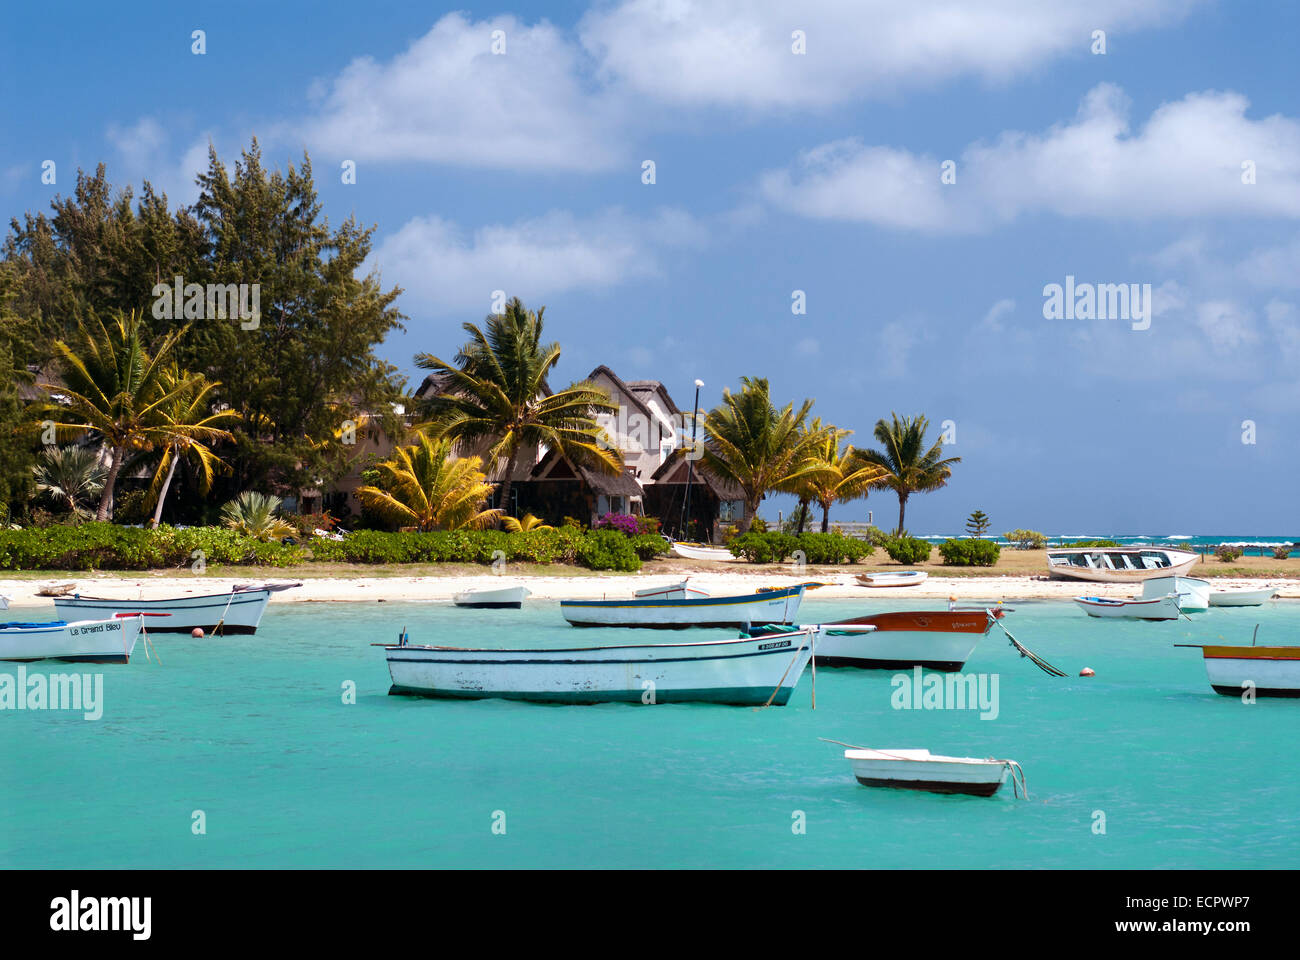 A Bay on the East Coast of Mauritius - Stock Image